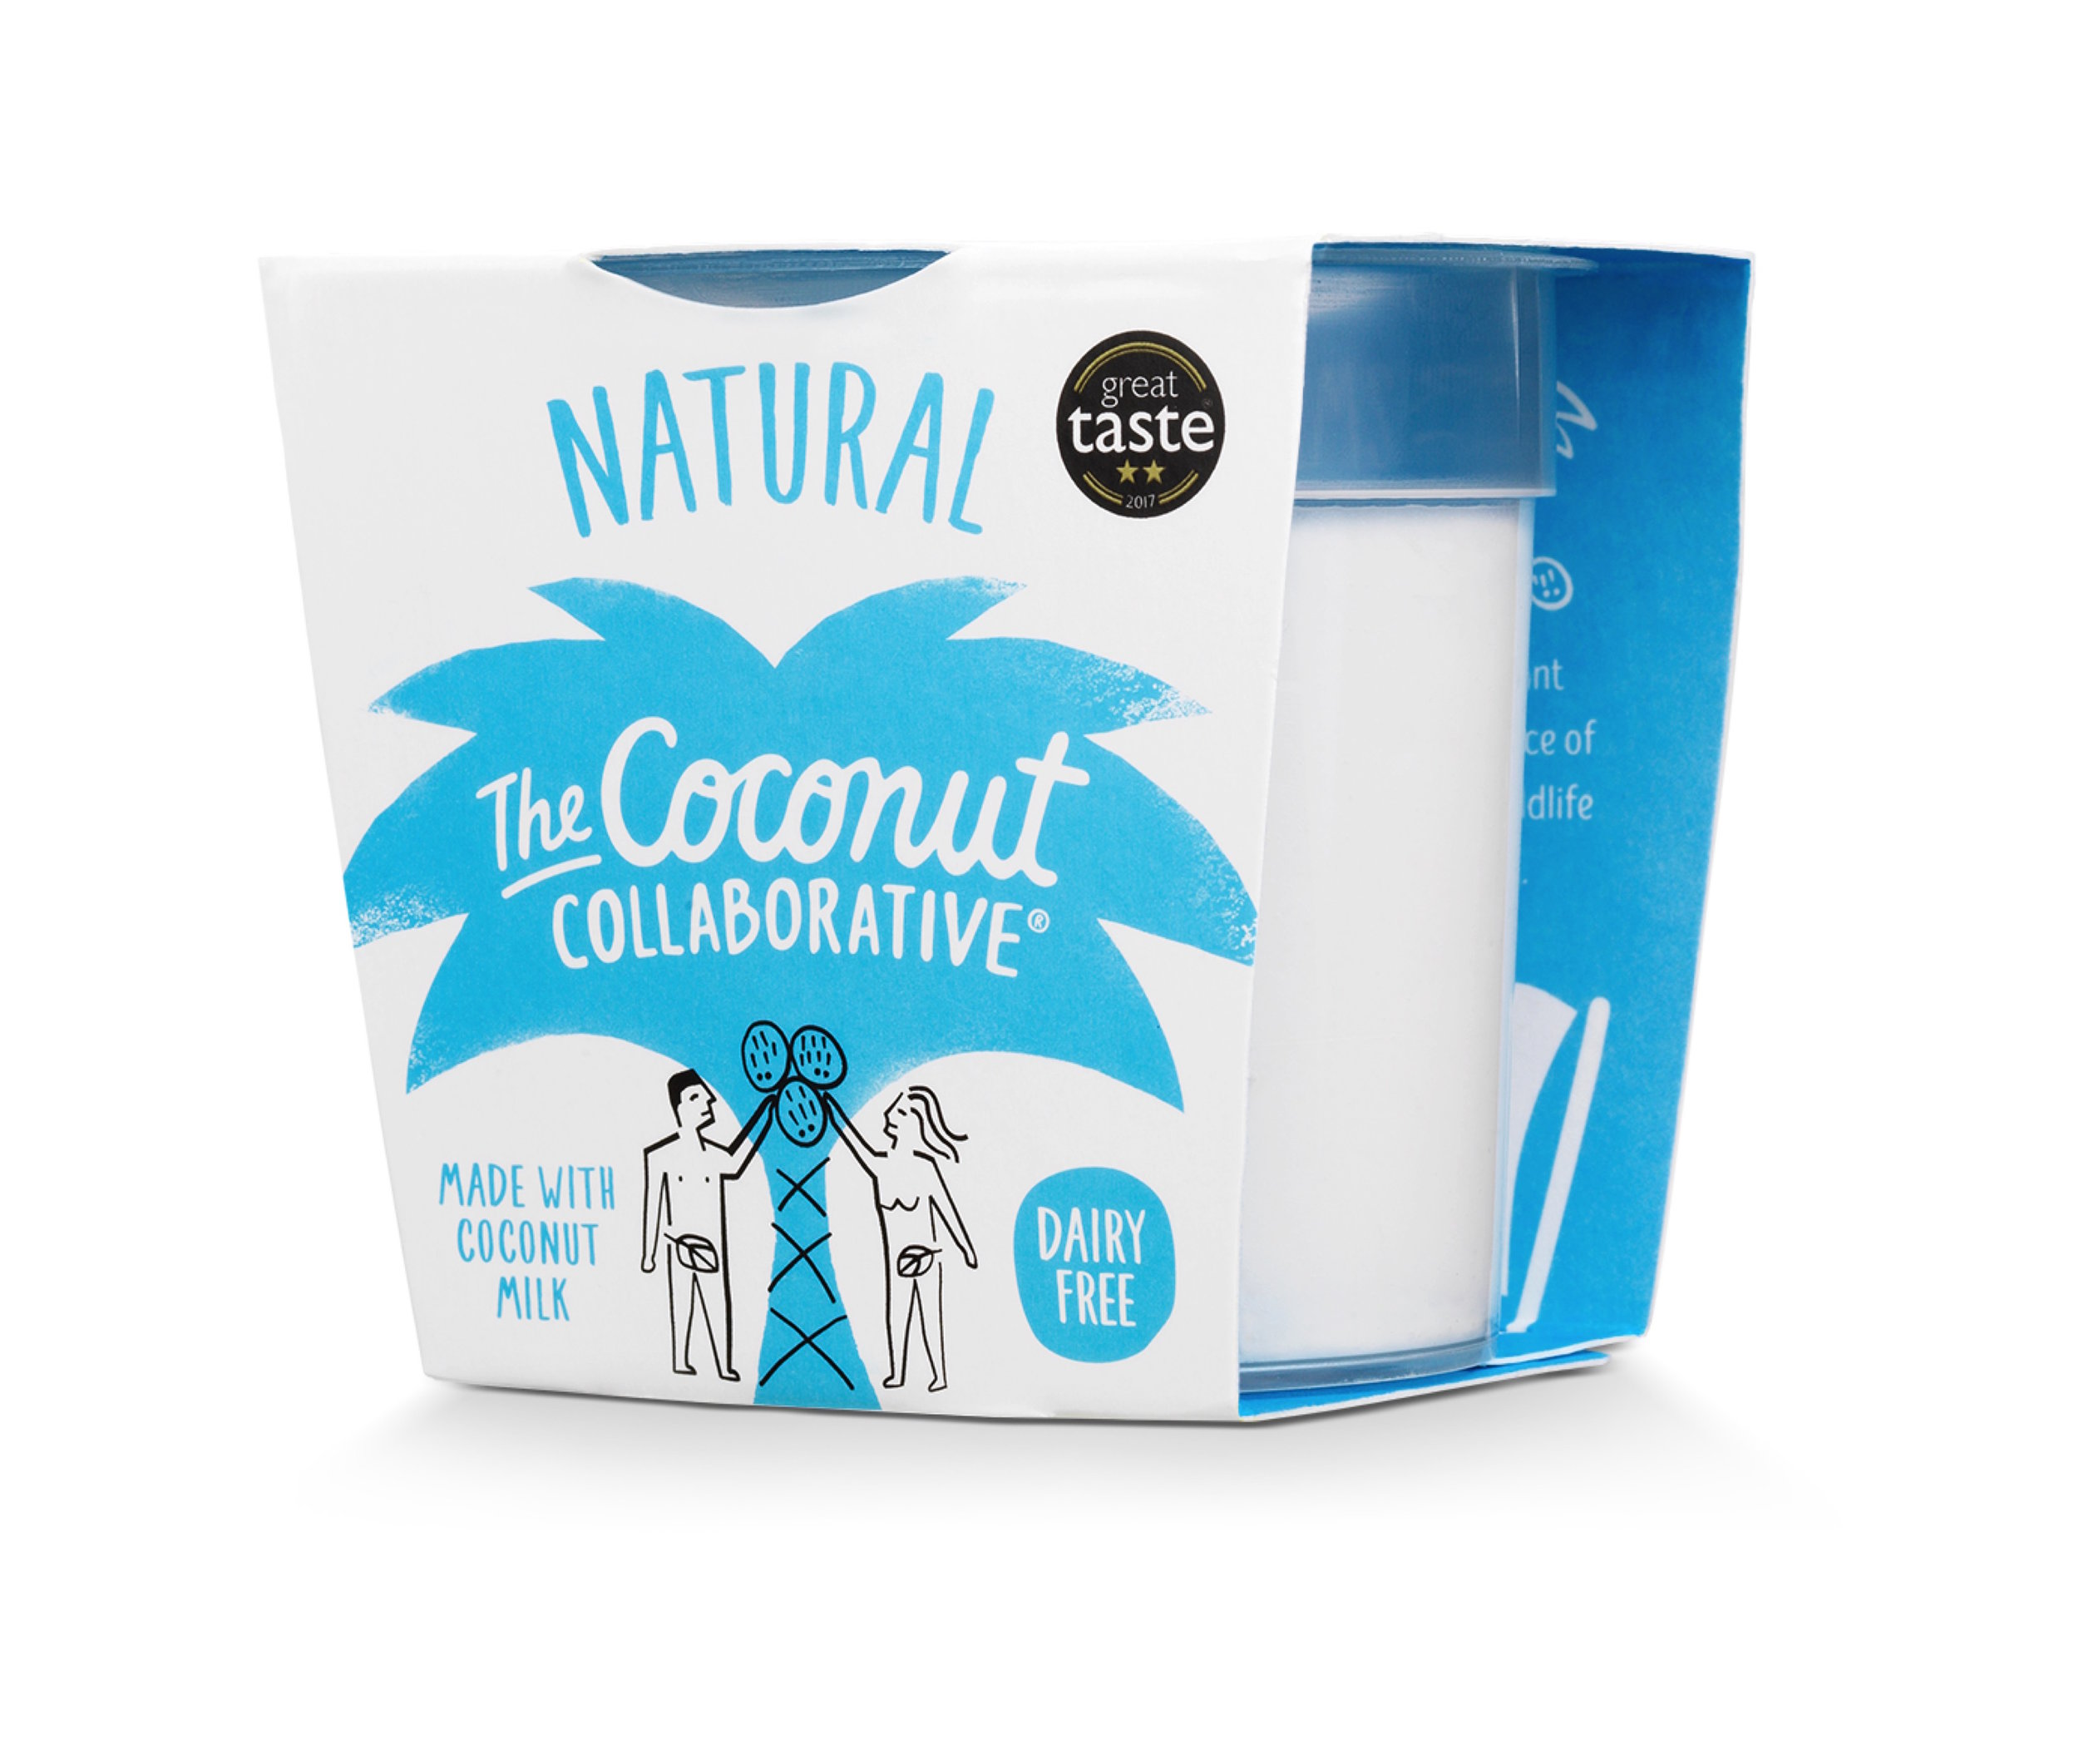 Coconut Collaborative - Made from coconut milk and only natural sugars, The Coconut Collaborative is the cool kid on the vegan yoghurt block. We like ours with a sprinkle of our signature Almond & Vanilla quinoa granola.